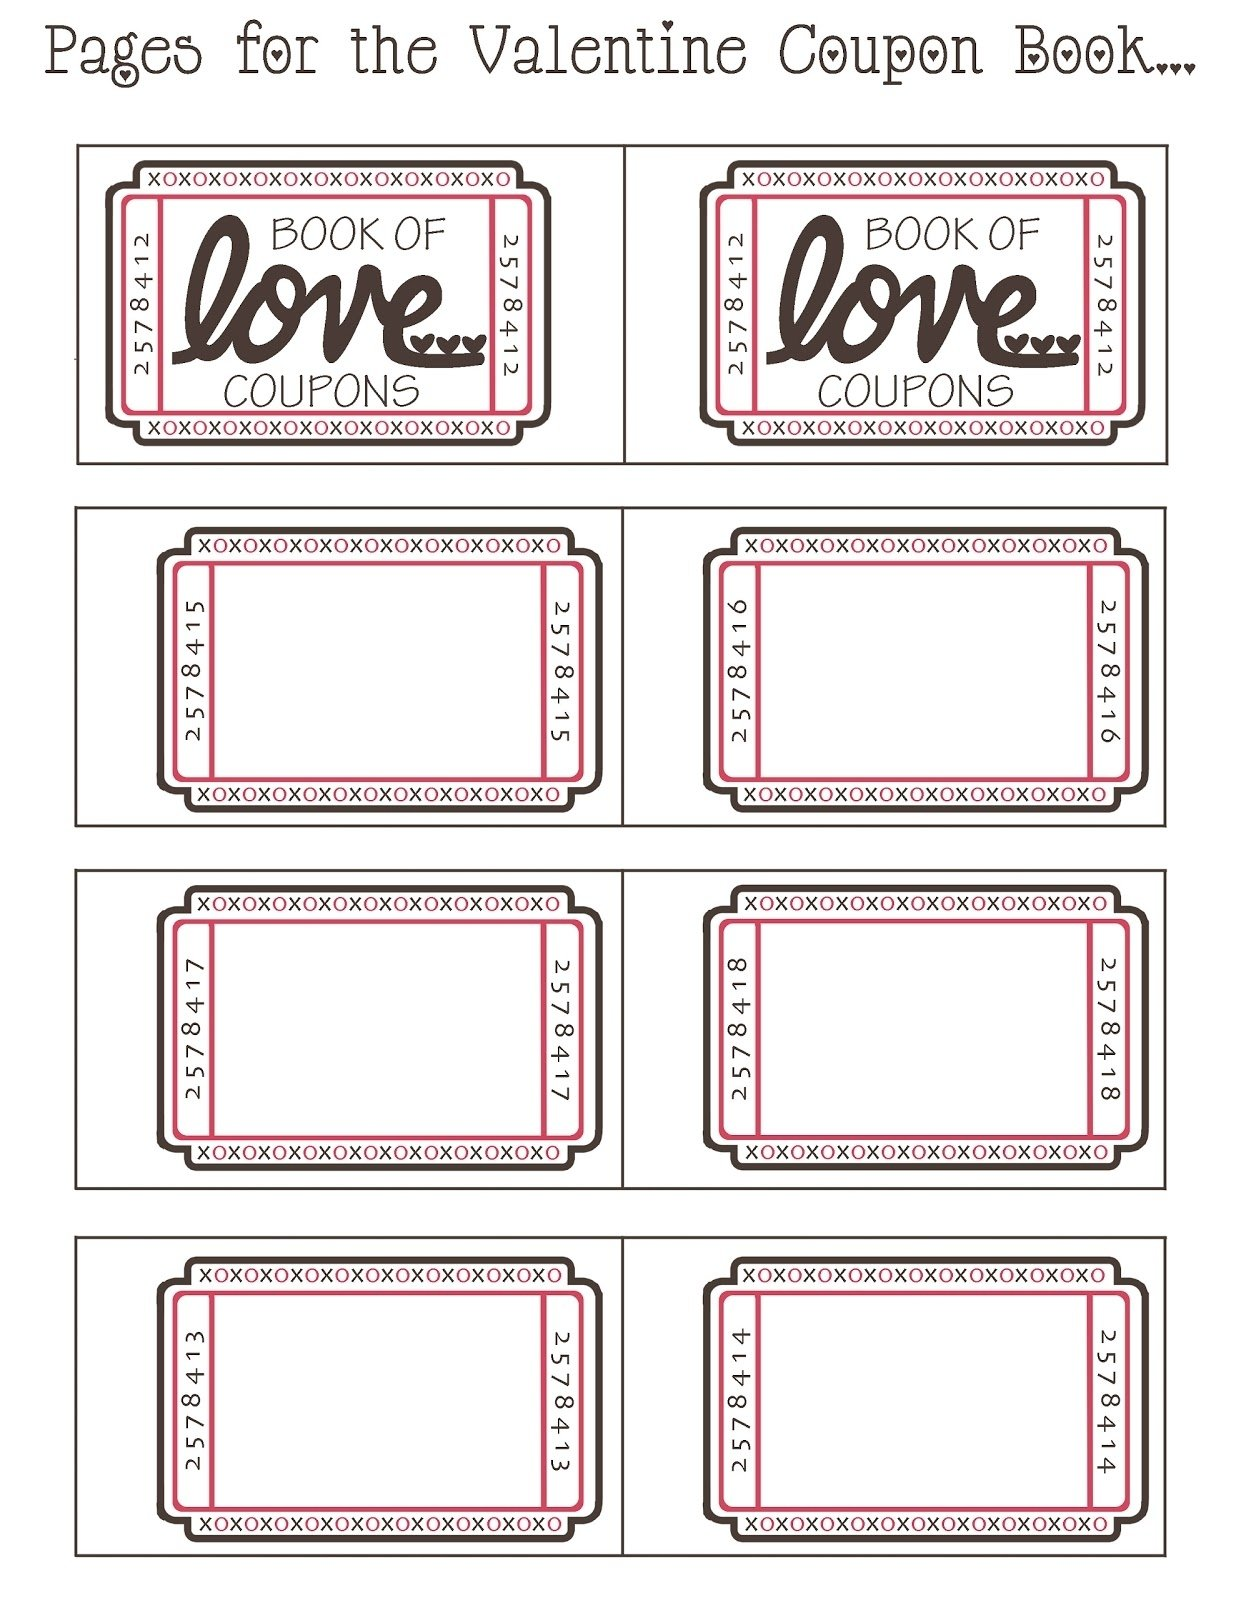 10 Wonderful Coupon Book Ideas For Girlfriend mommyday crafternight free printable valentine coupon book 1 2021